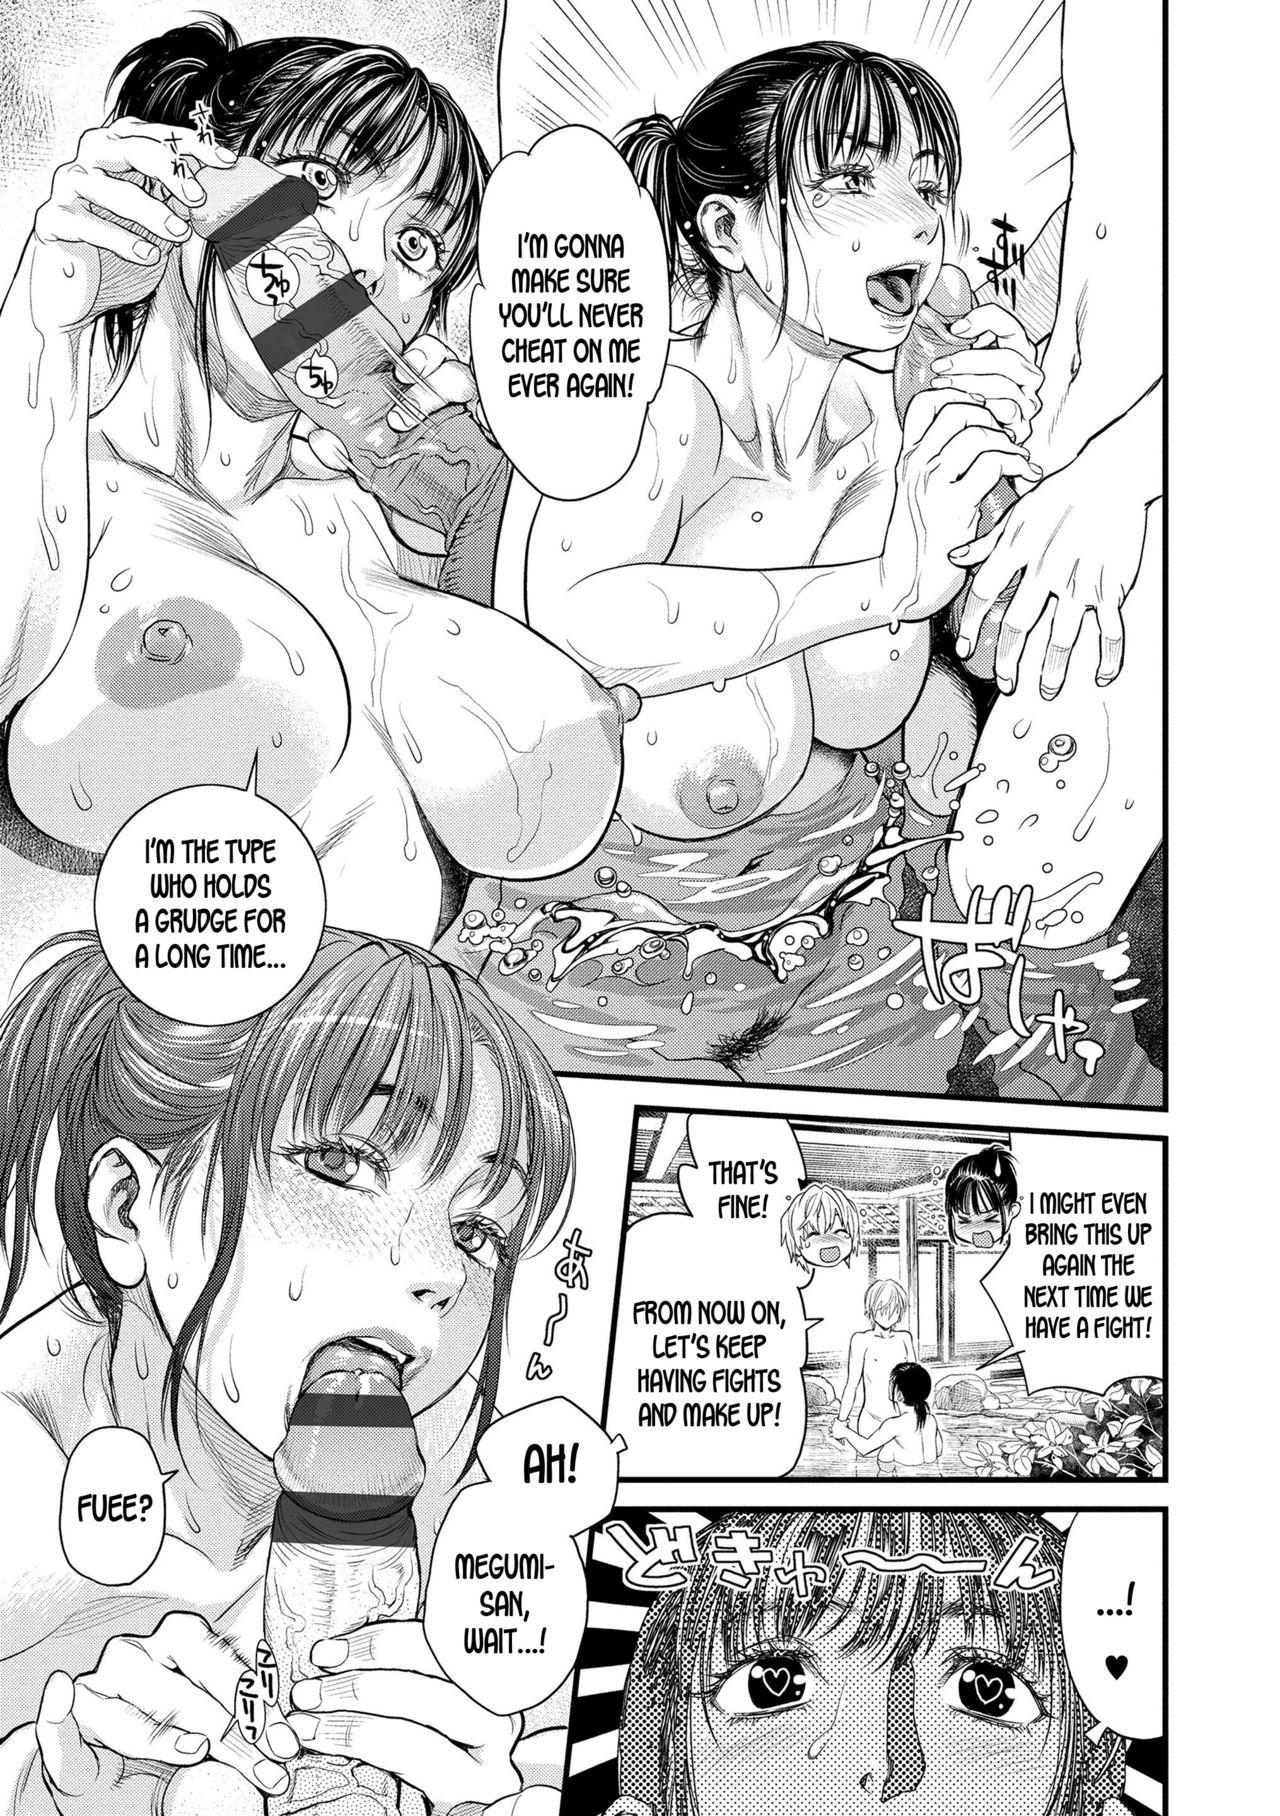 Boku to Itoko no Onee-san to | Together With My Older Cousin Ch. 3 7